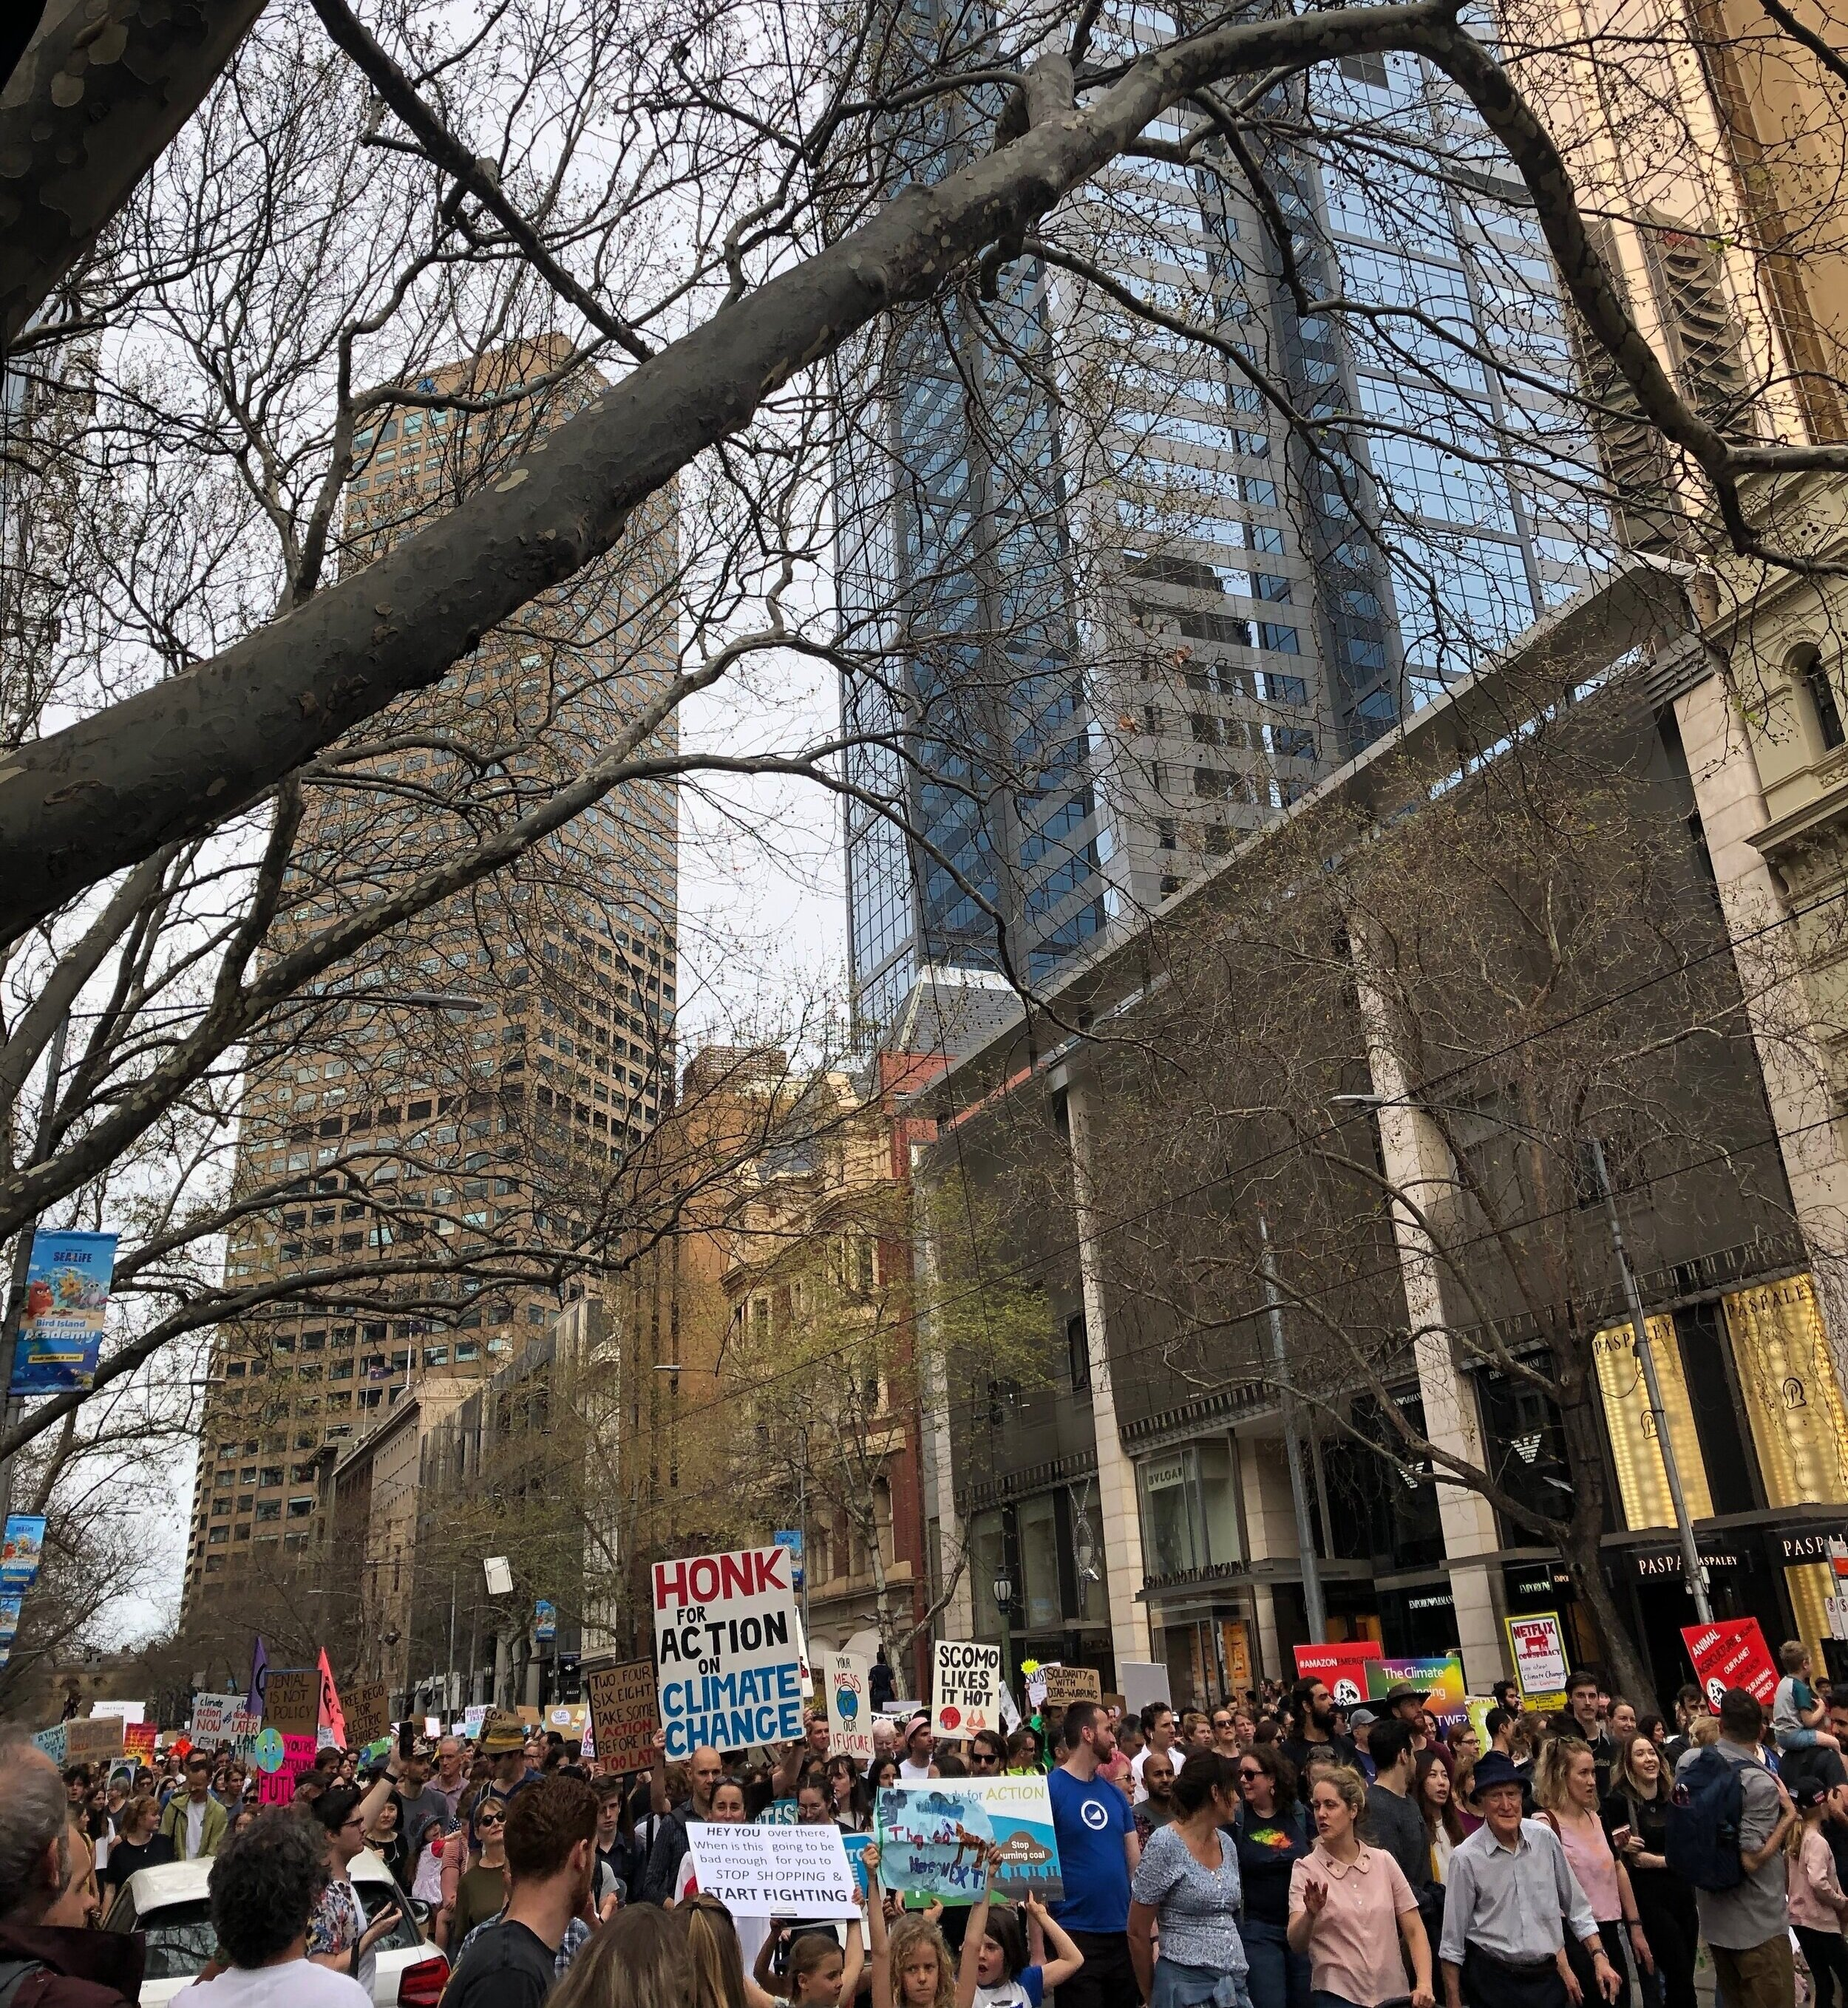 Children leading the crowd in Melbourne's CBD. Photograph by Coral Huckstep